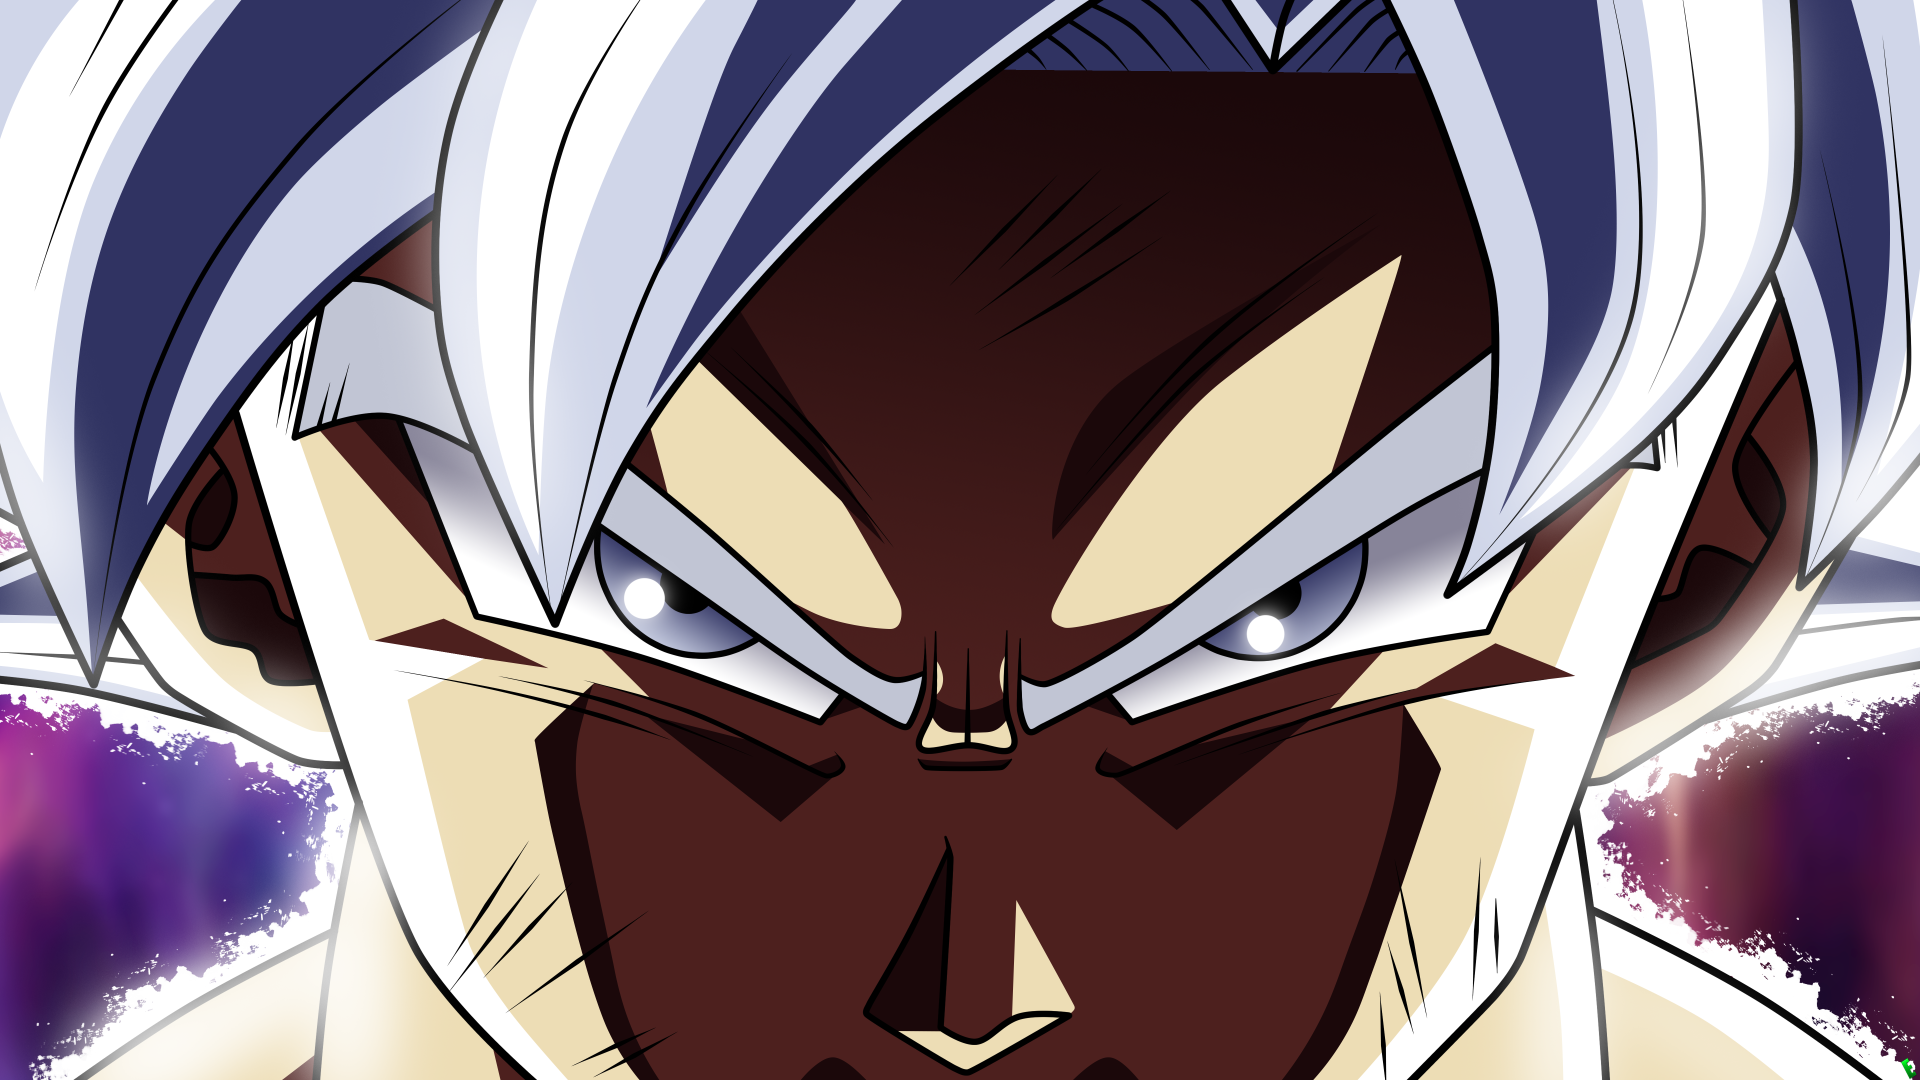 Goku Ultra Instinct Wallpaper 1080p: Goku Migatte No Gokui Dominado 5k Retina Ultra HD